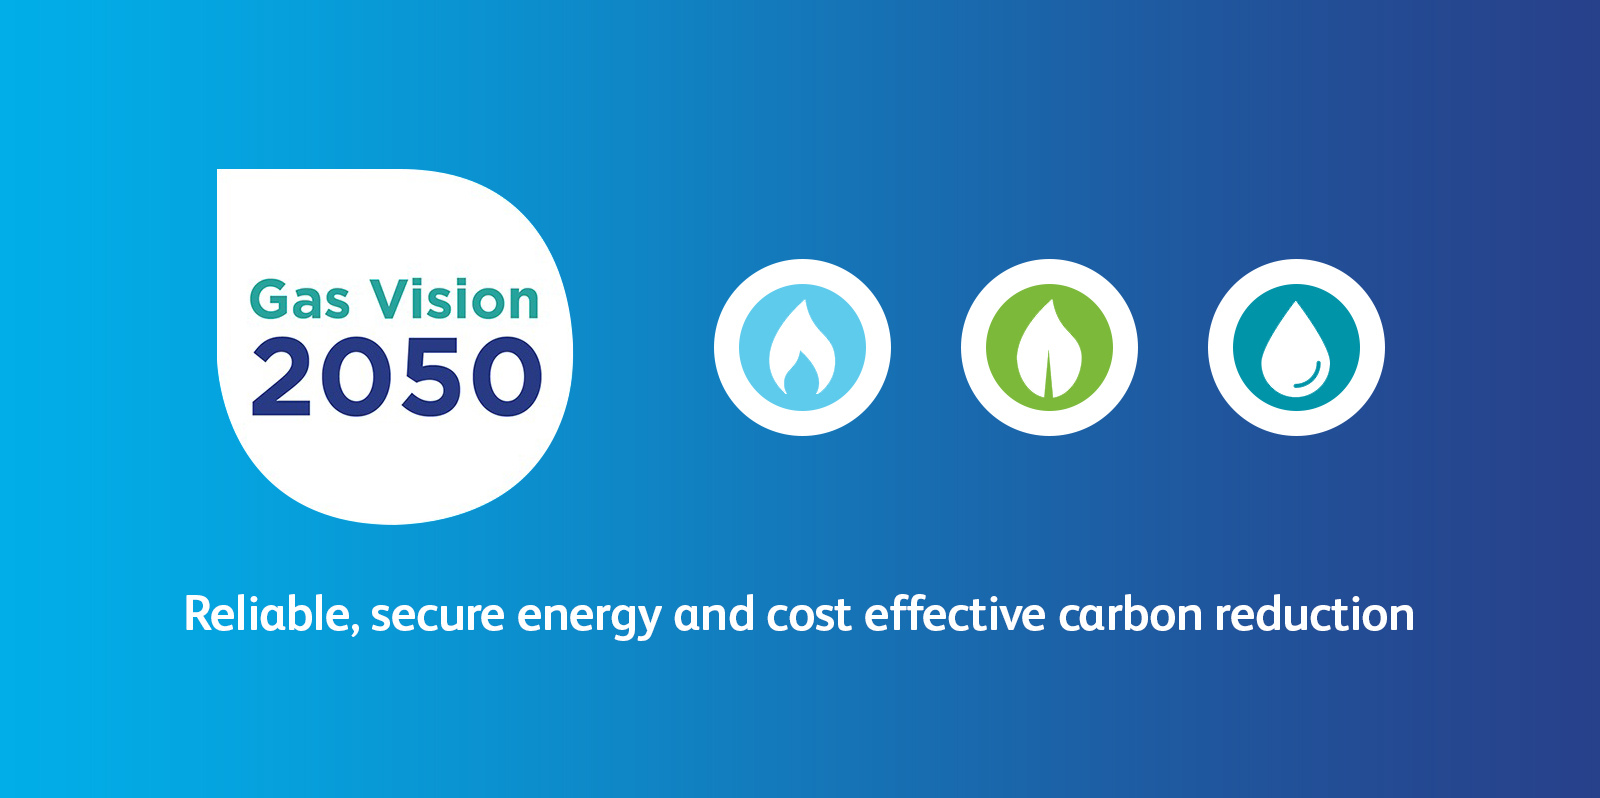 Australian Gas Networks - Gas Vision 2050